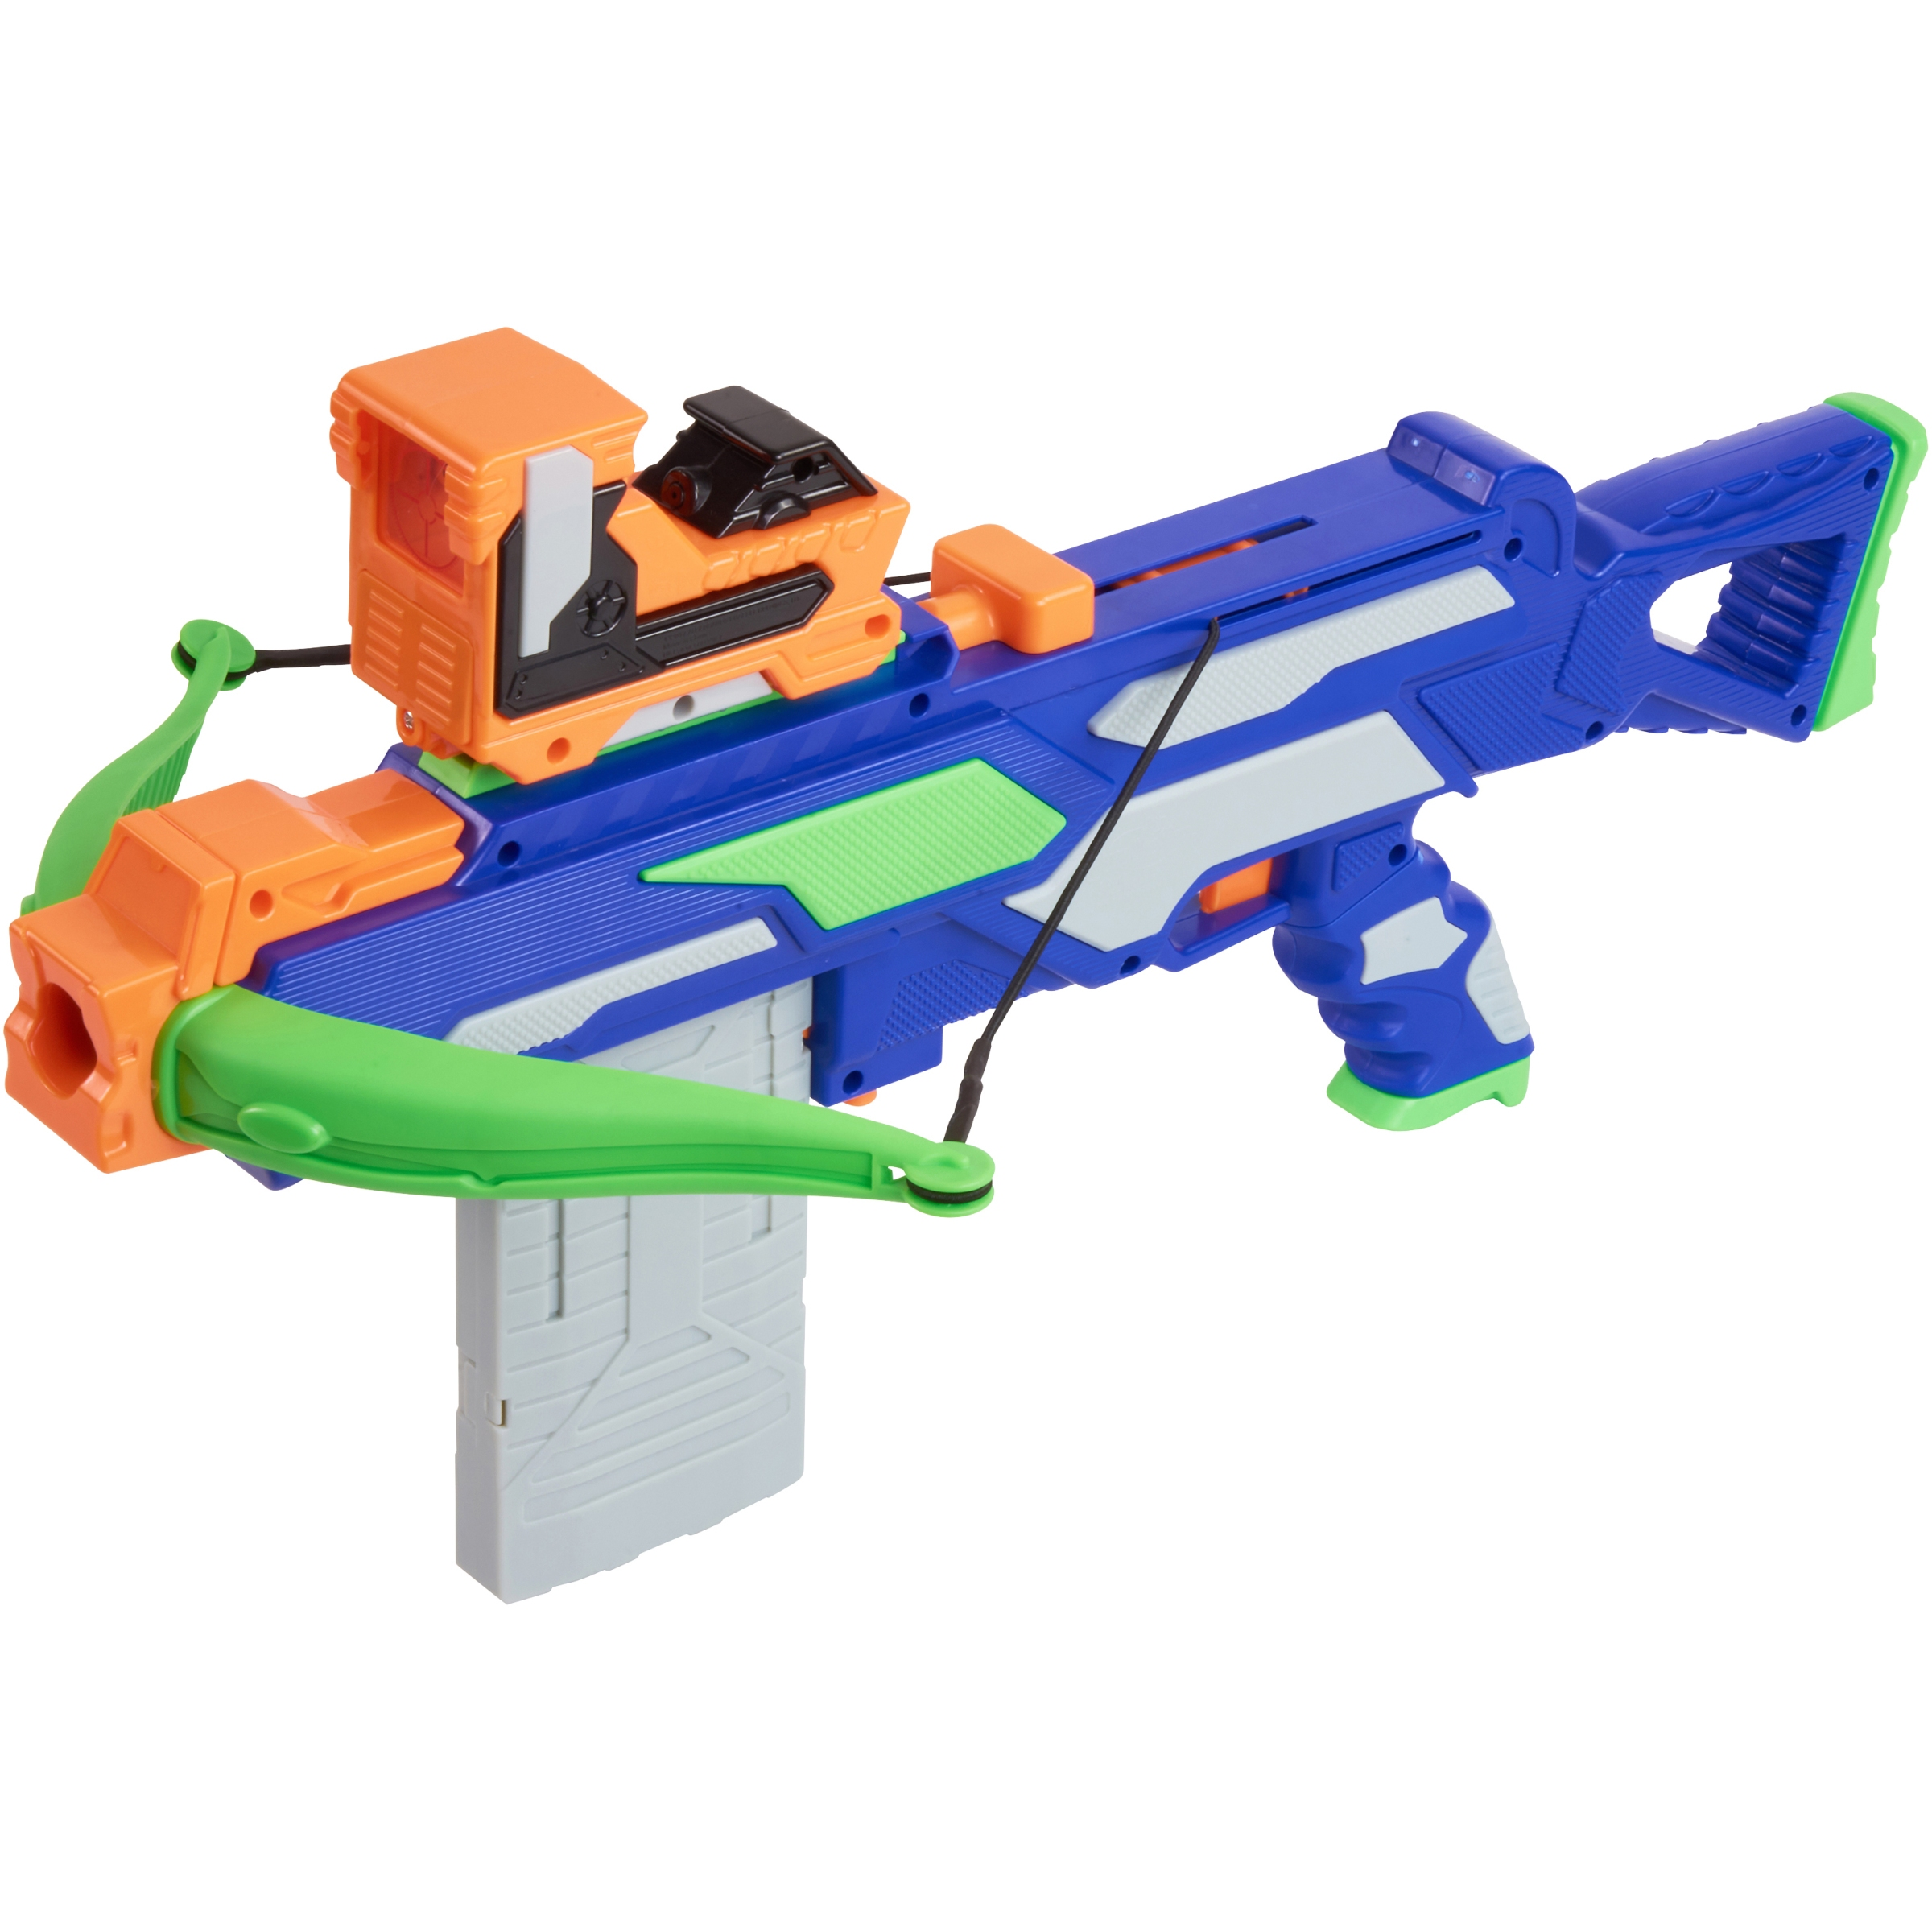 Adventure force crossbow with darts and clips, battery operated